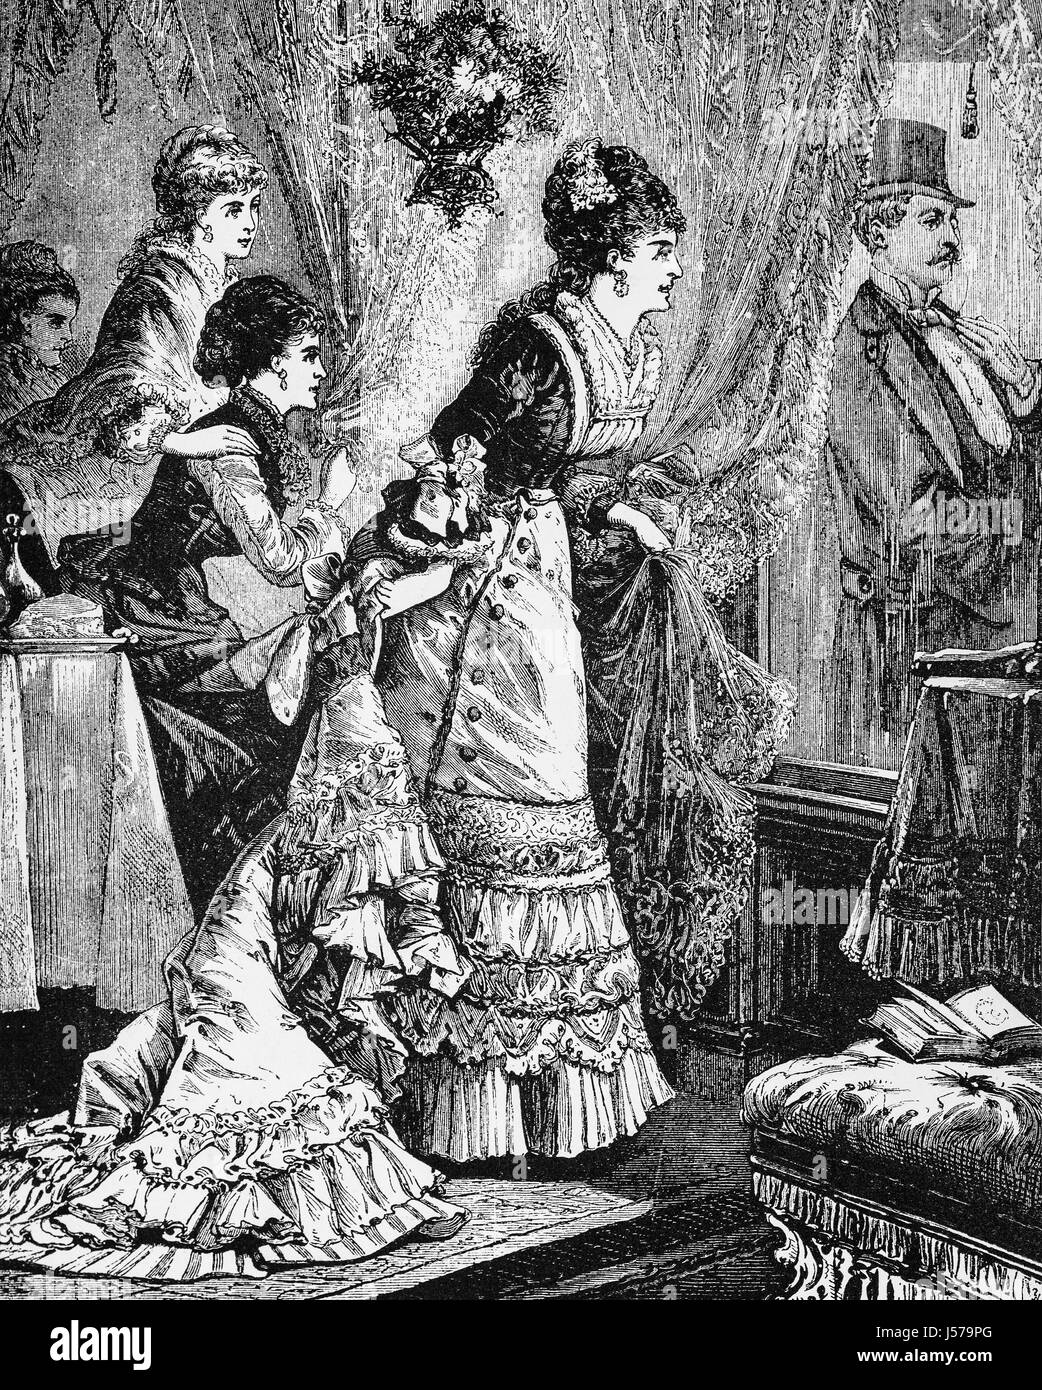 1880: Guests at a New Year Party in New York City, New York State, United States of America - Stock Image